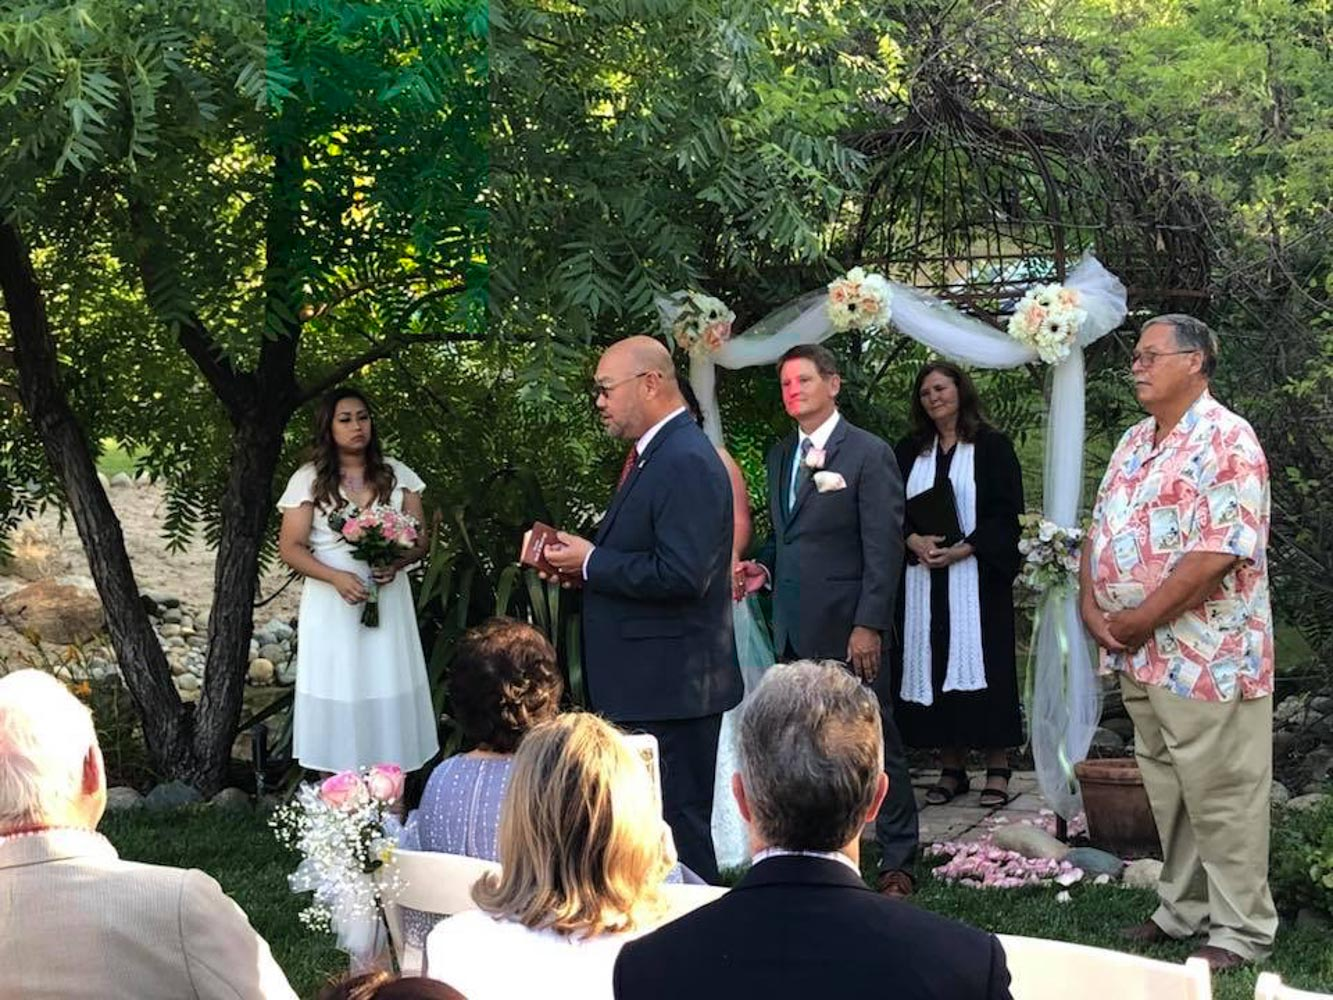 Minister, bride, groom and guests listening to man presenting reading during garden wedding ceremony.